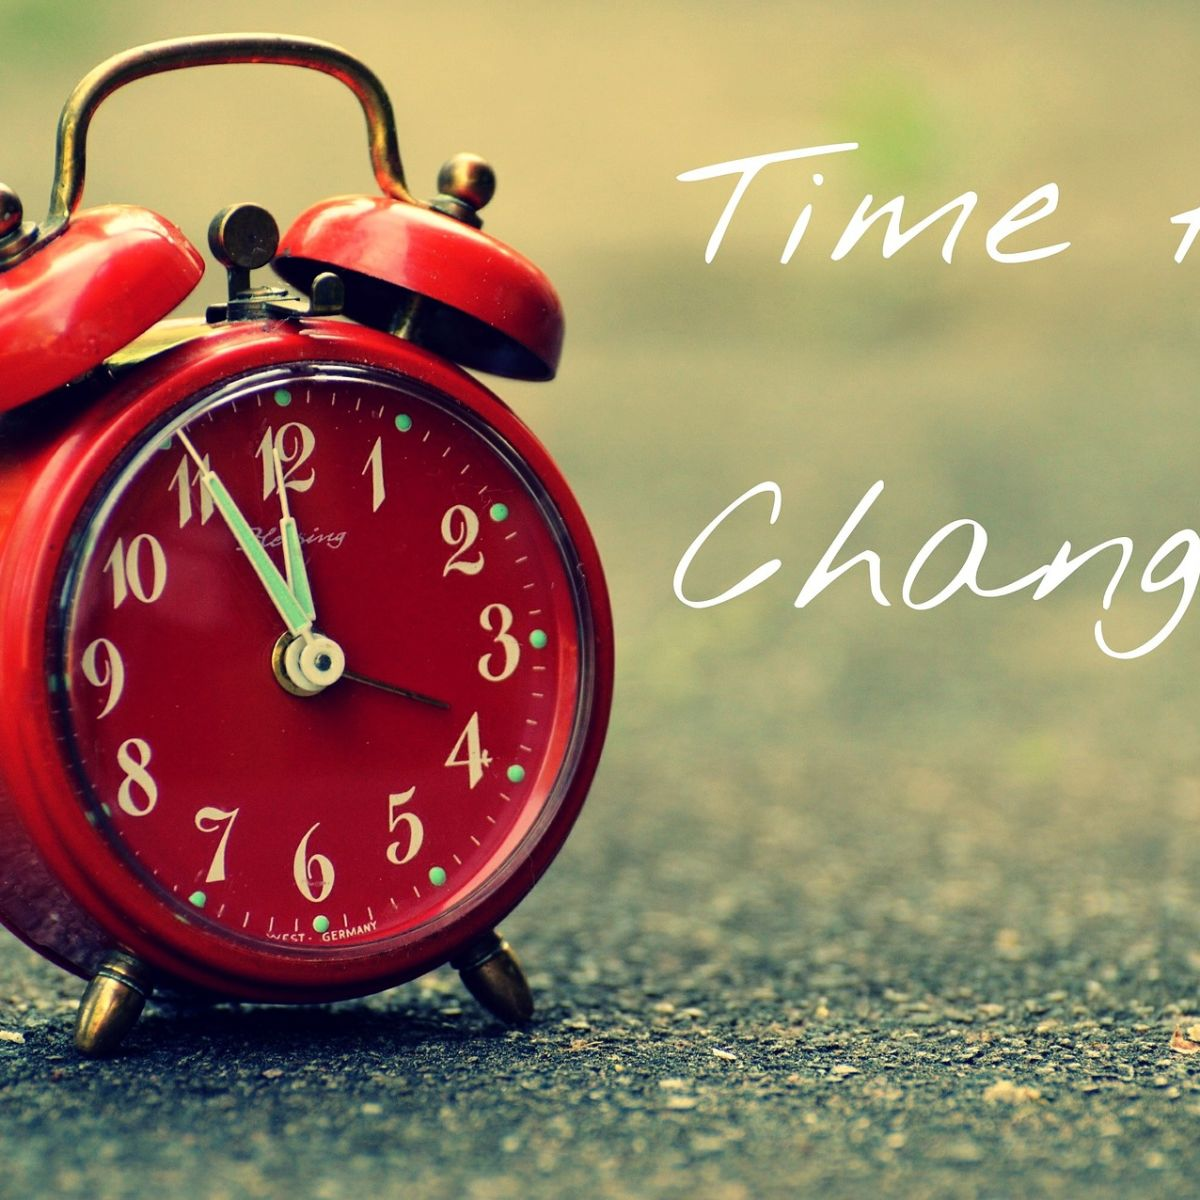 Red alarm clock: Time for change